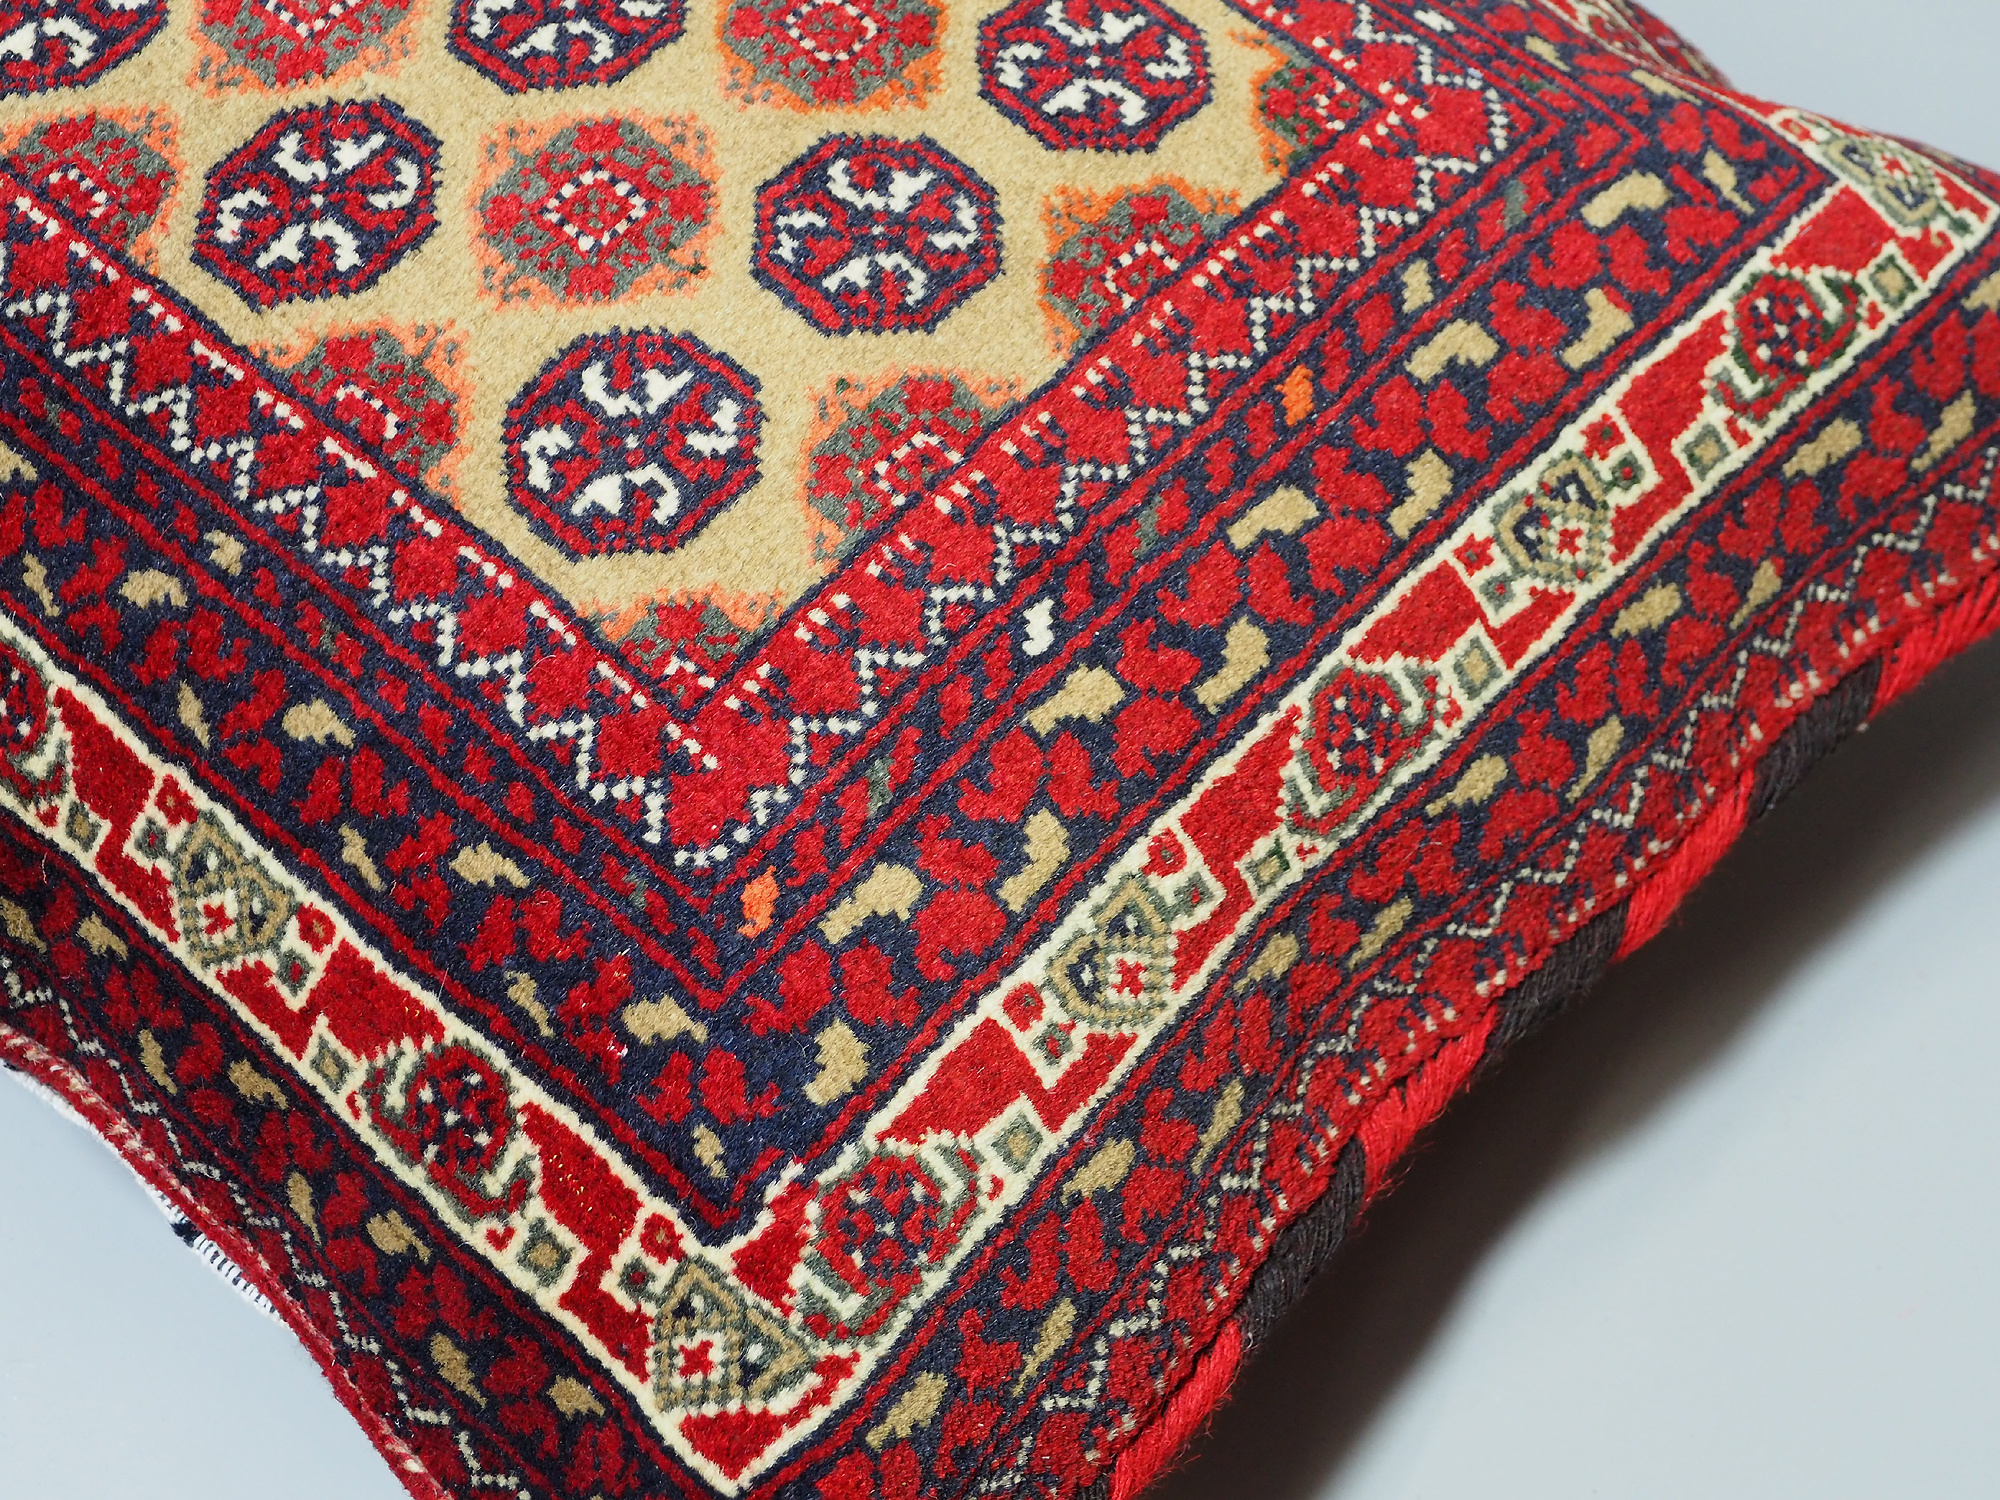 77x52 cm rare Hand knotted Turkmen wedding carpet cushion orient nomad rug seat Bohemian Afghanistan pillow  BS/3